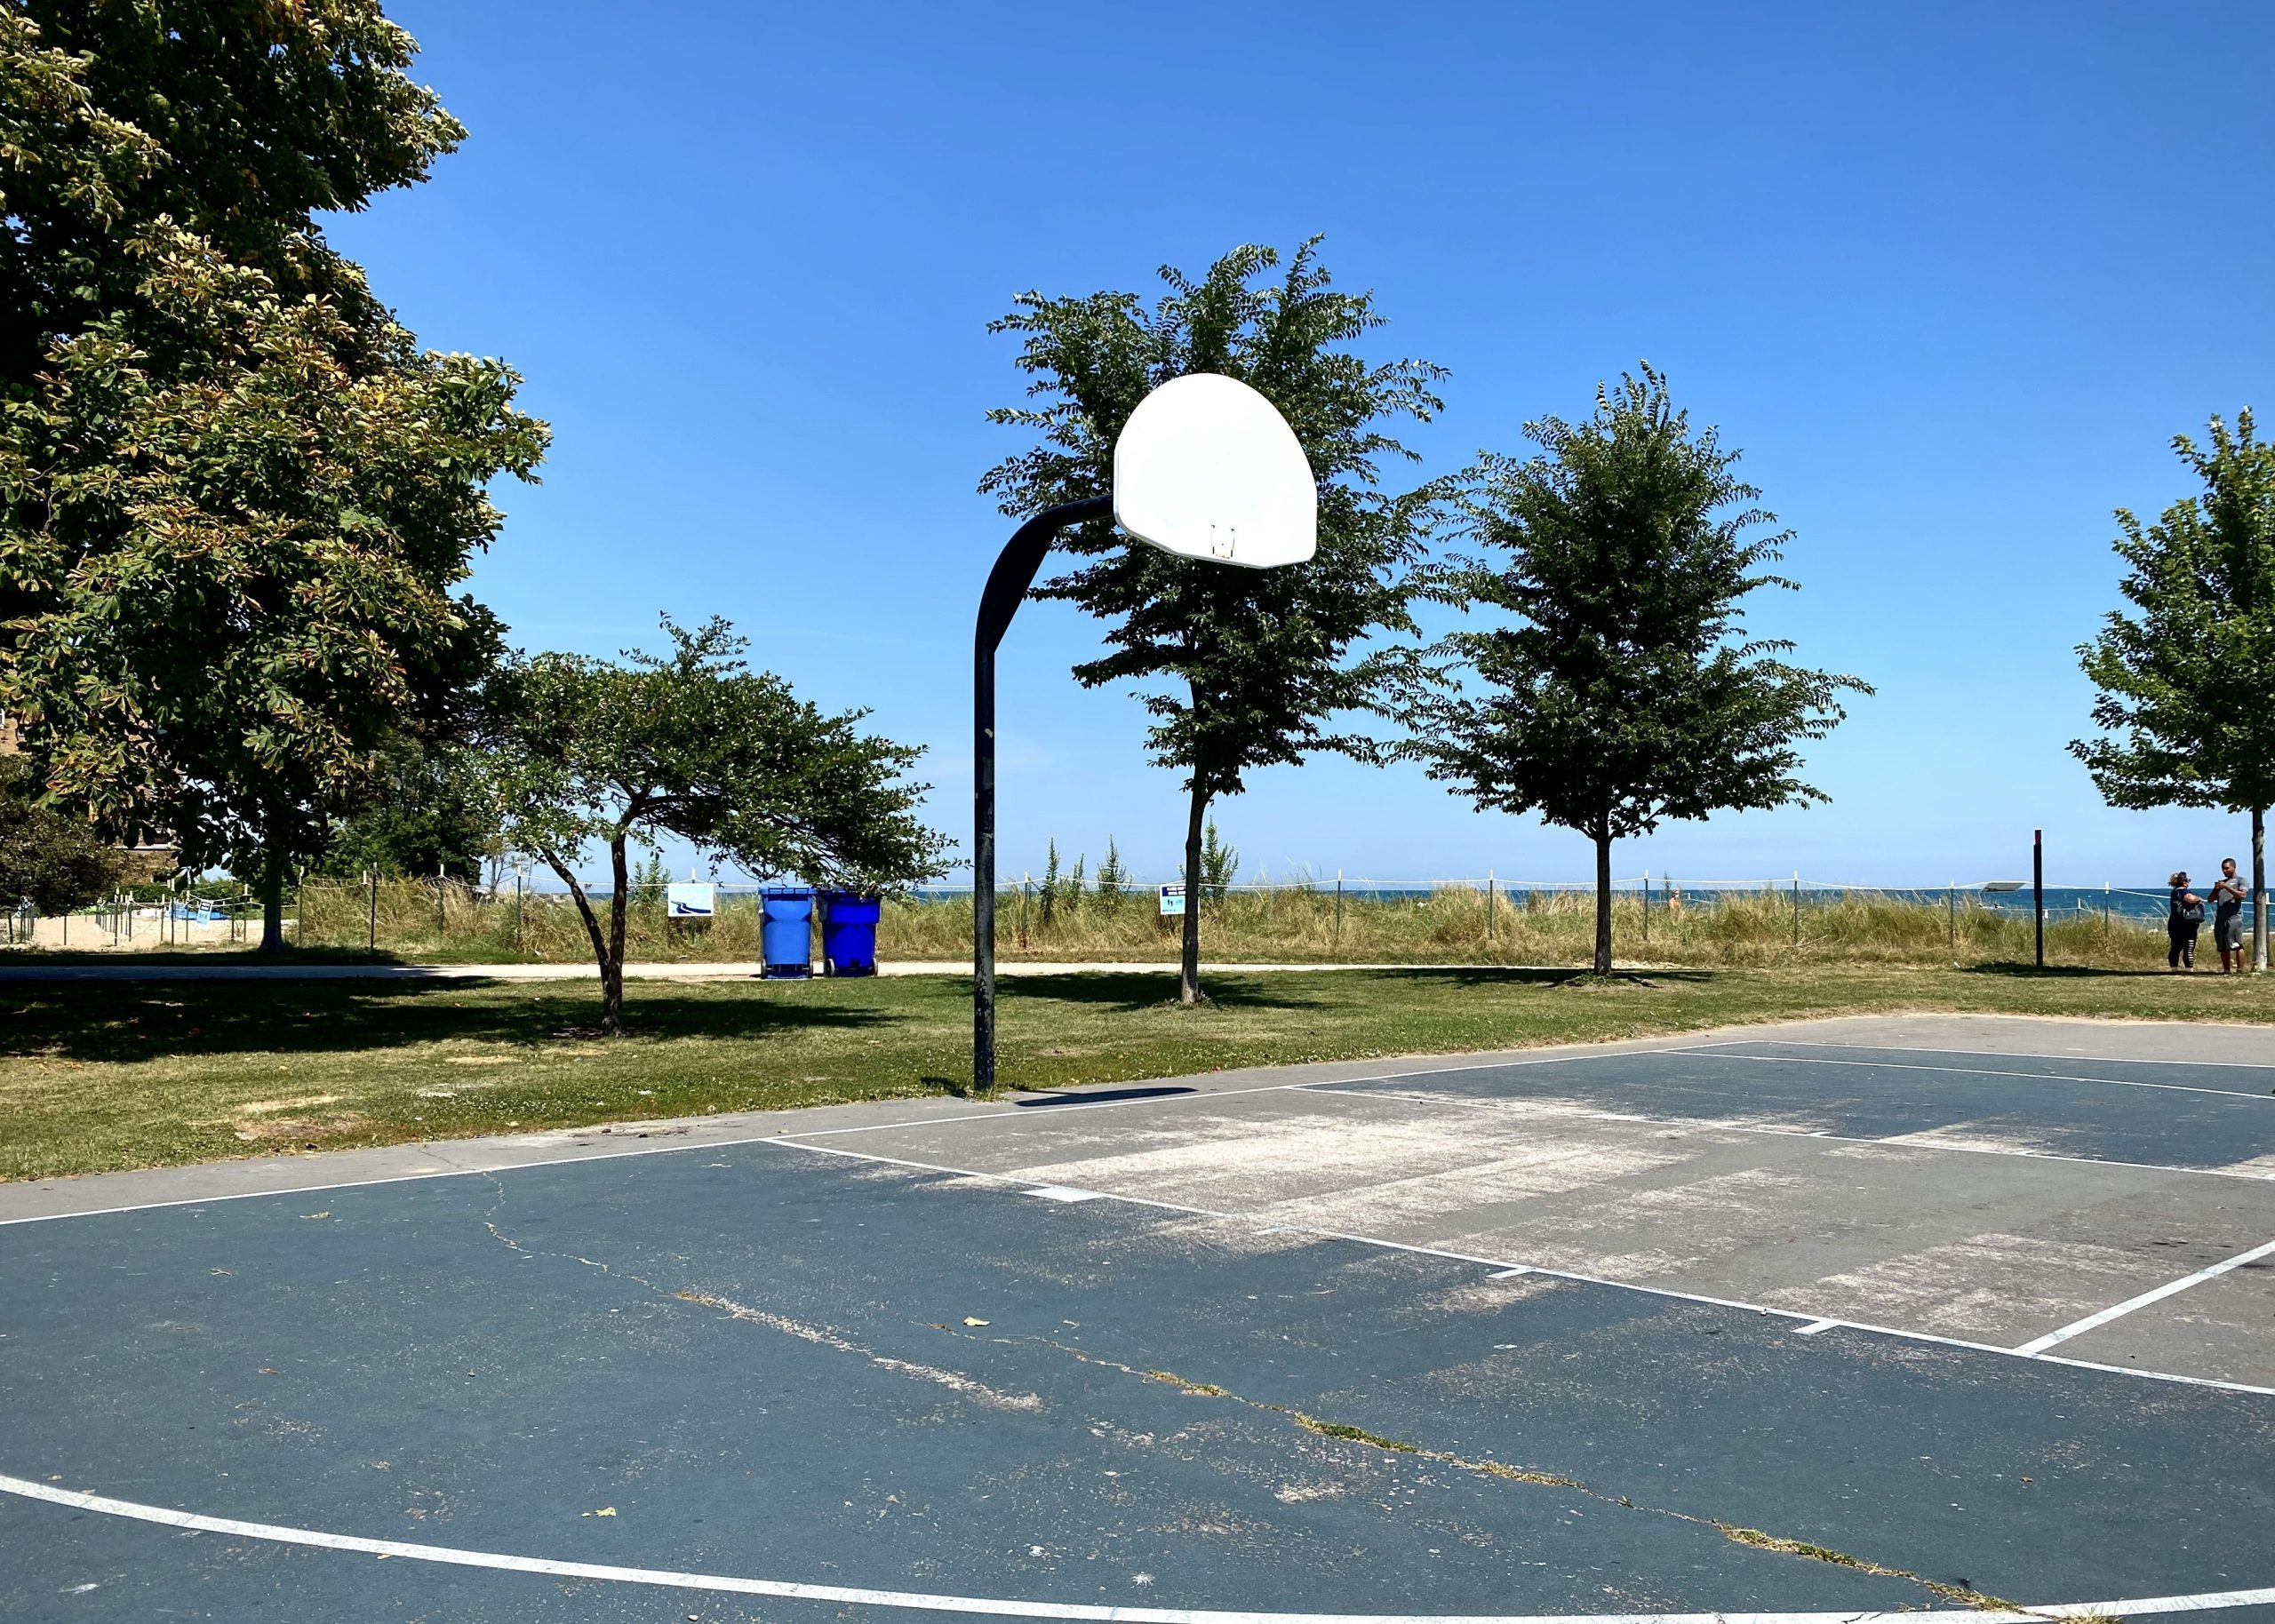 The Loyola Park basketball court in Rogers Park without rims in August 2018. Loyola Park does not feature on the Chicago Park District's list of inactive courts, and it is unclear why the rims here have not been restored here since Chicago resumed park access in its  phased reopening.